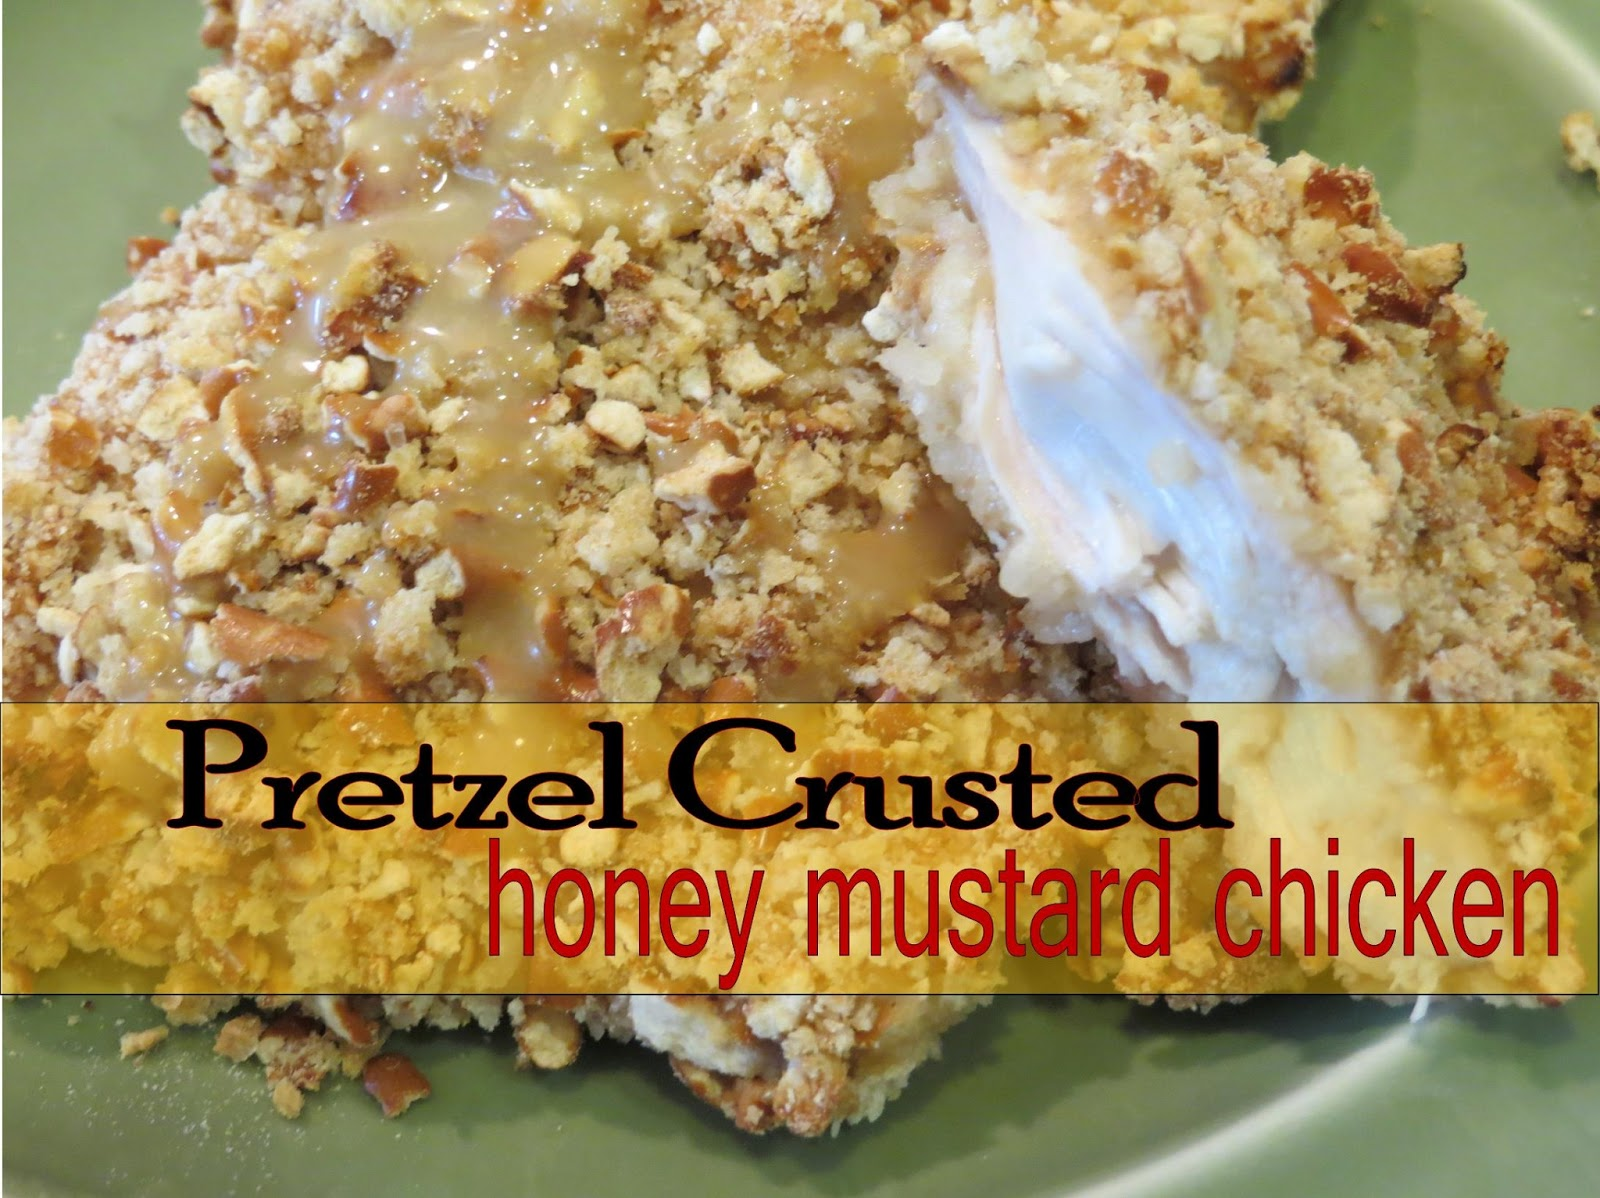 Pretzel-Crusted Chicken Breasts With Mustard-Dill Dipping Sauce ...